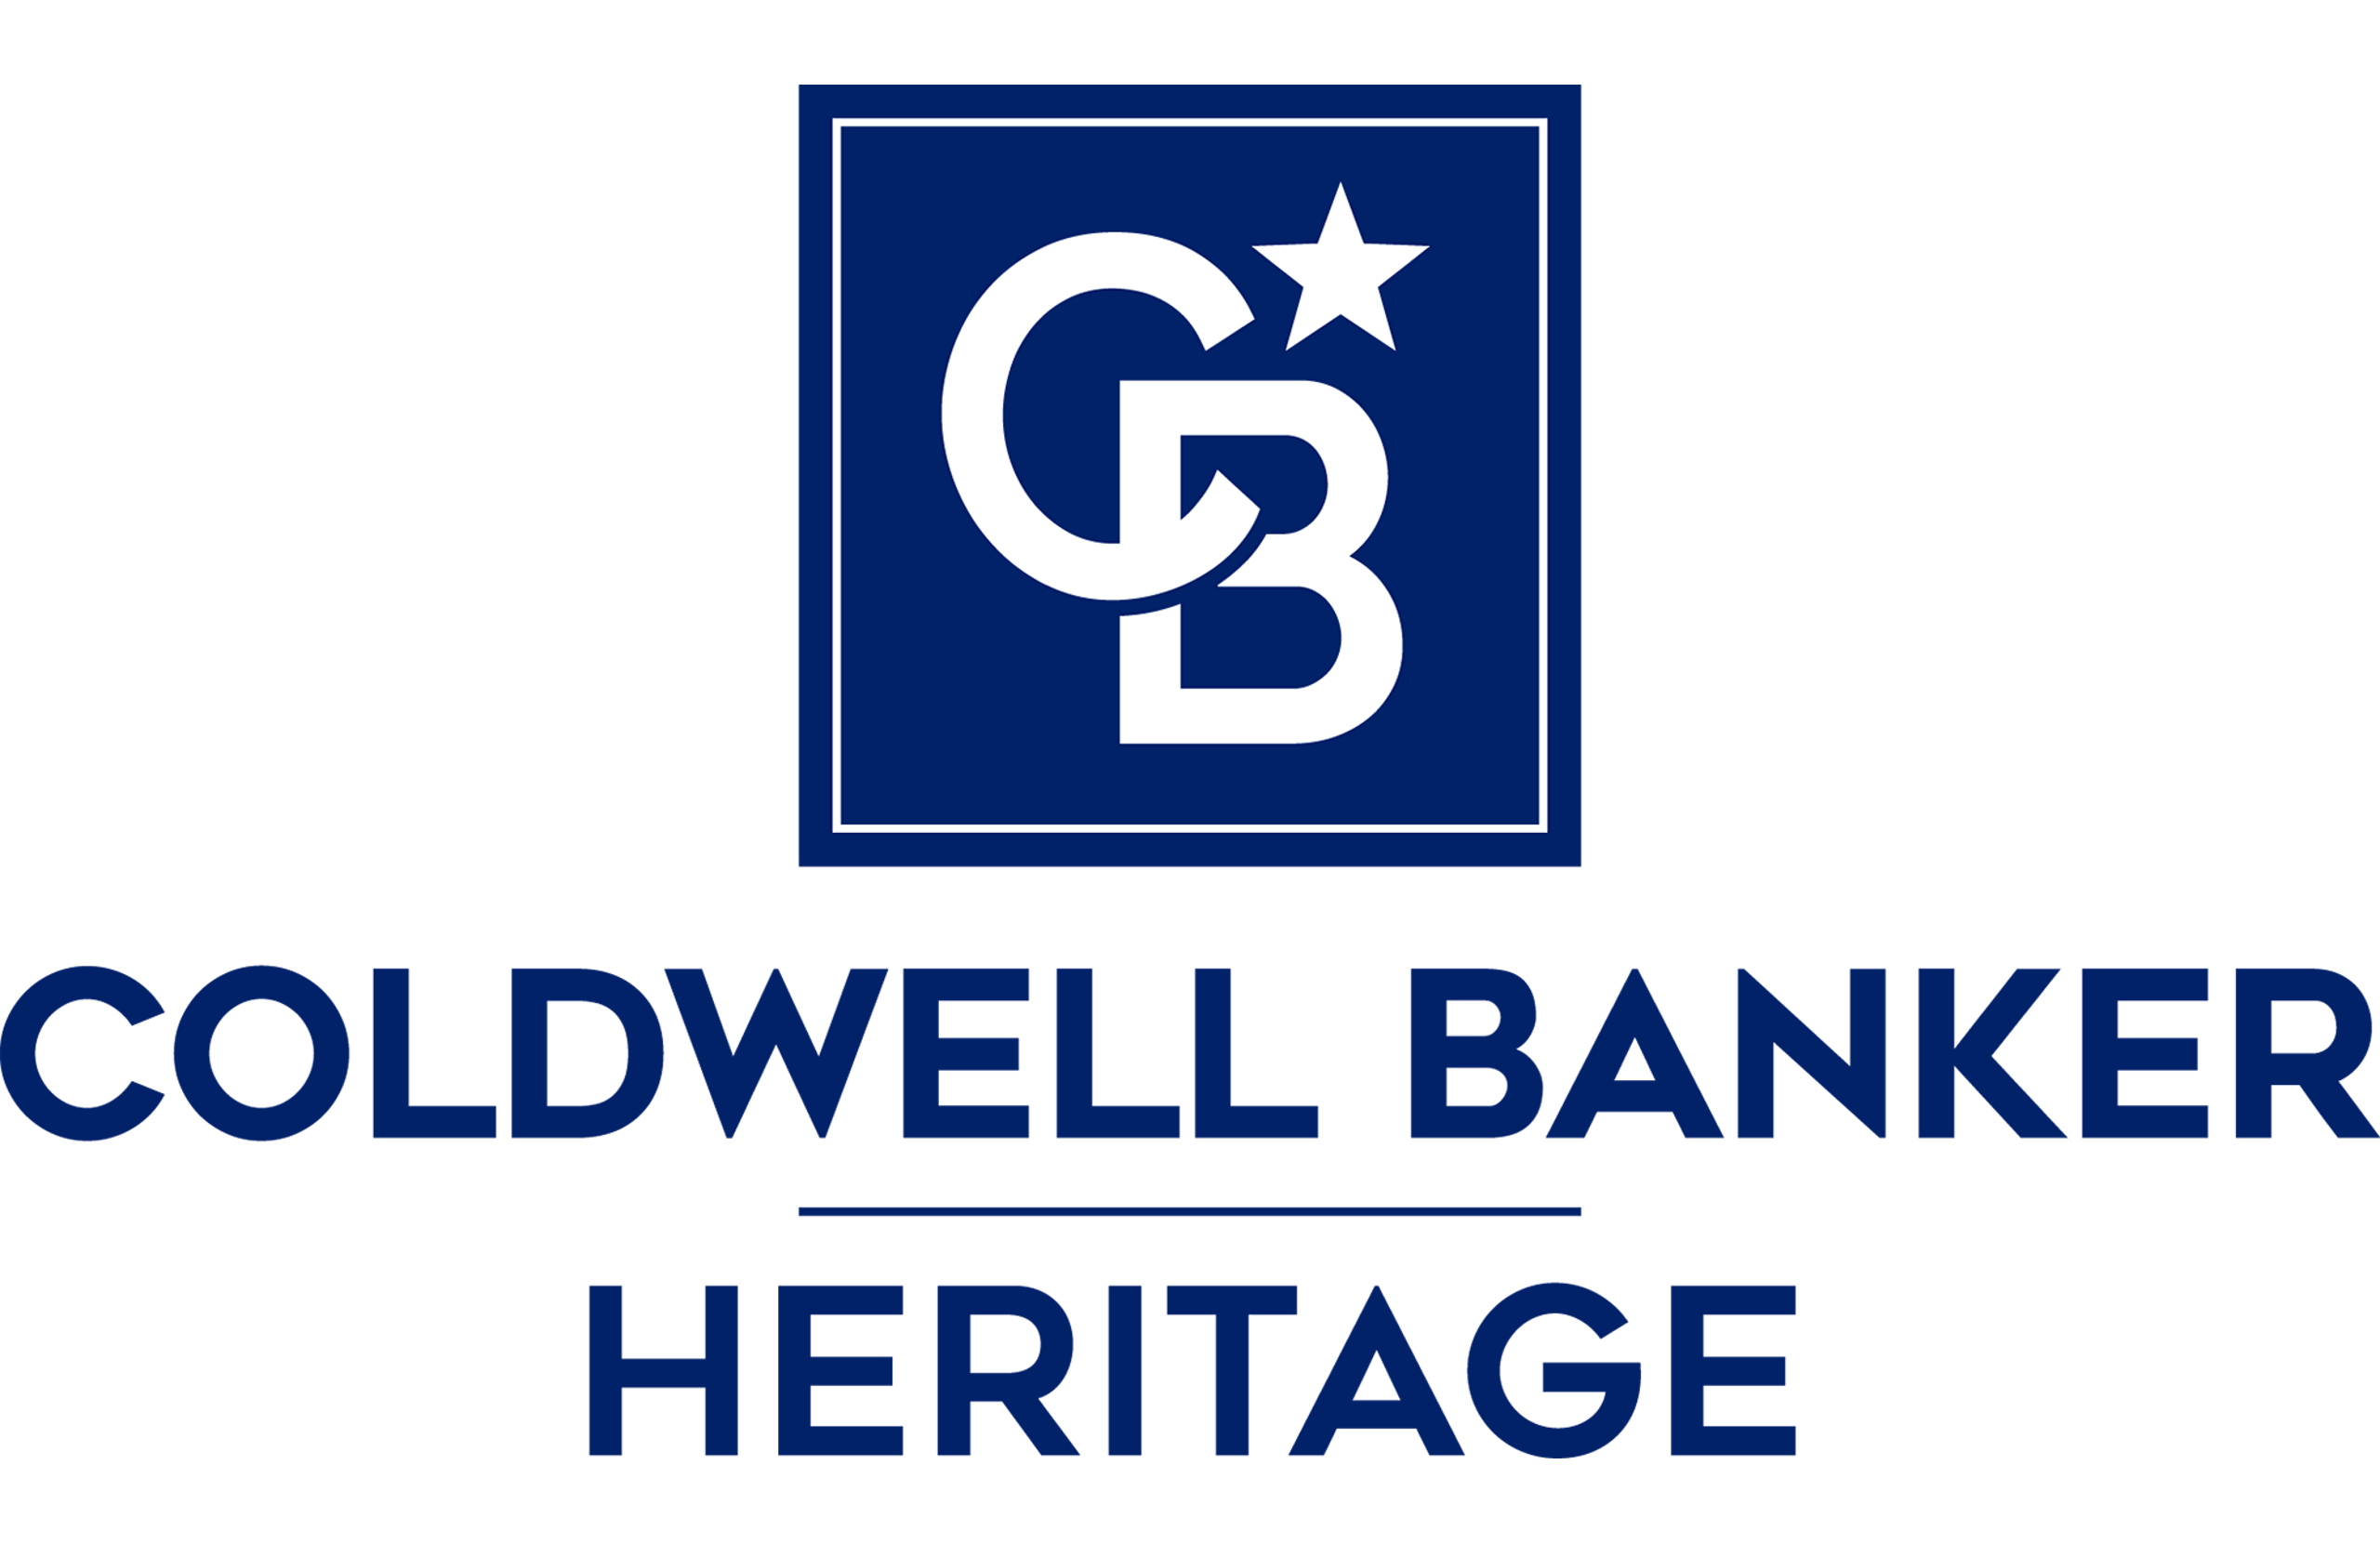 Laura Bettinger - - Coldwell Banker Heritage Logo